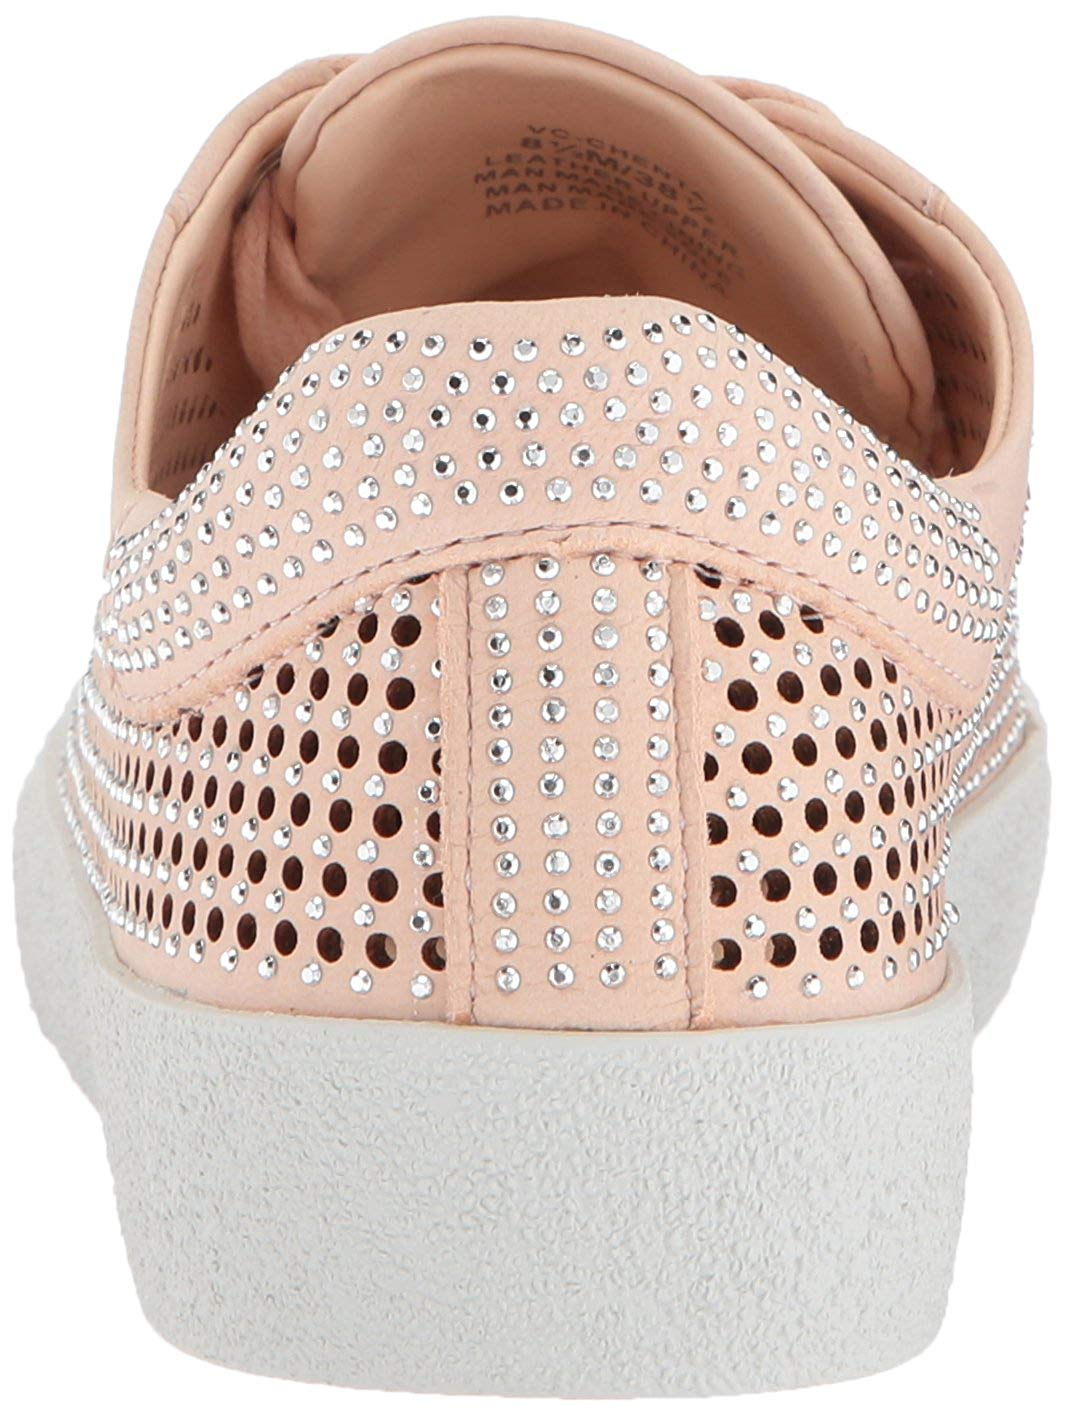 f01bba8b9a2a2 Details about Vince Camuto Women's Chenta Sneaker